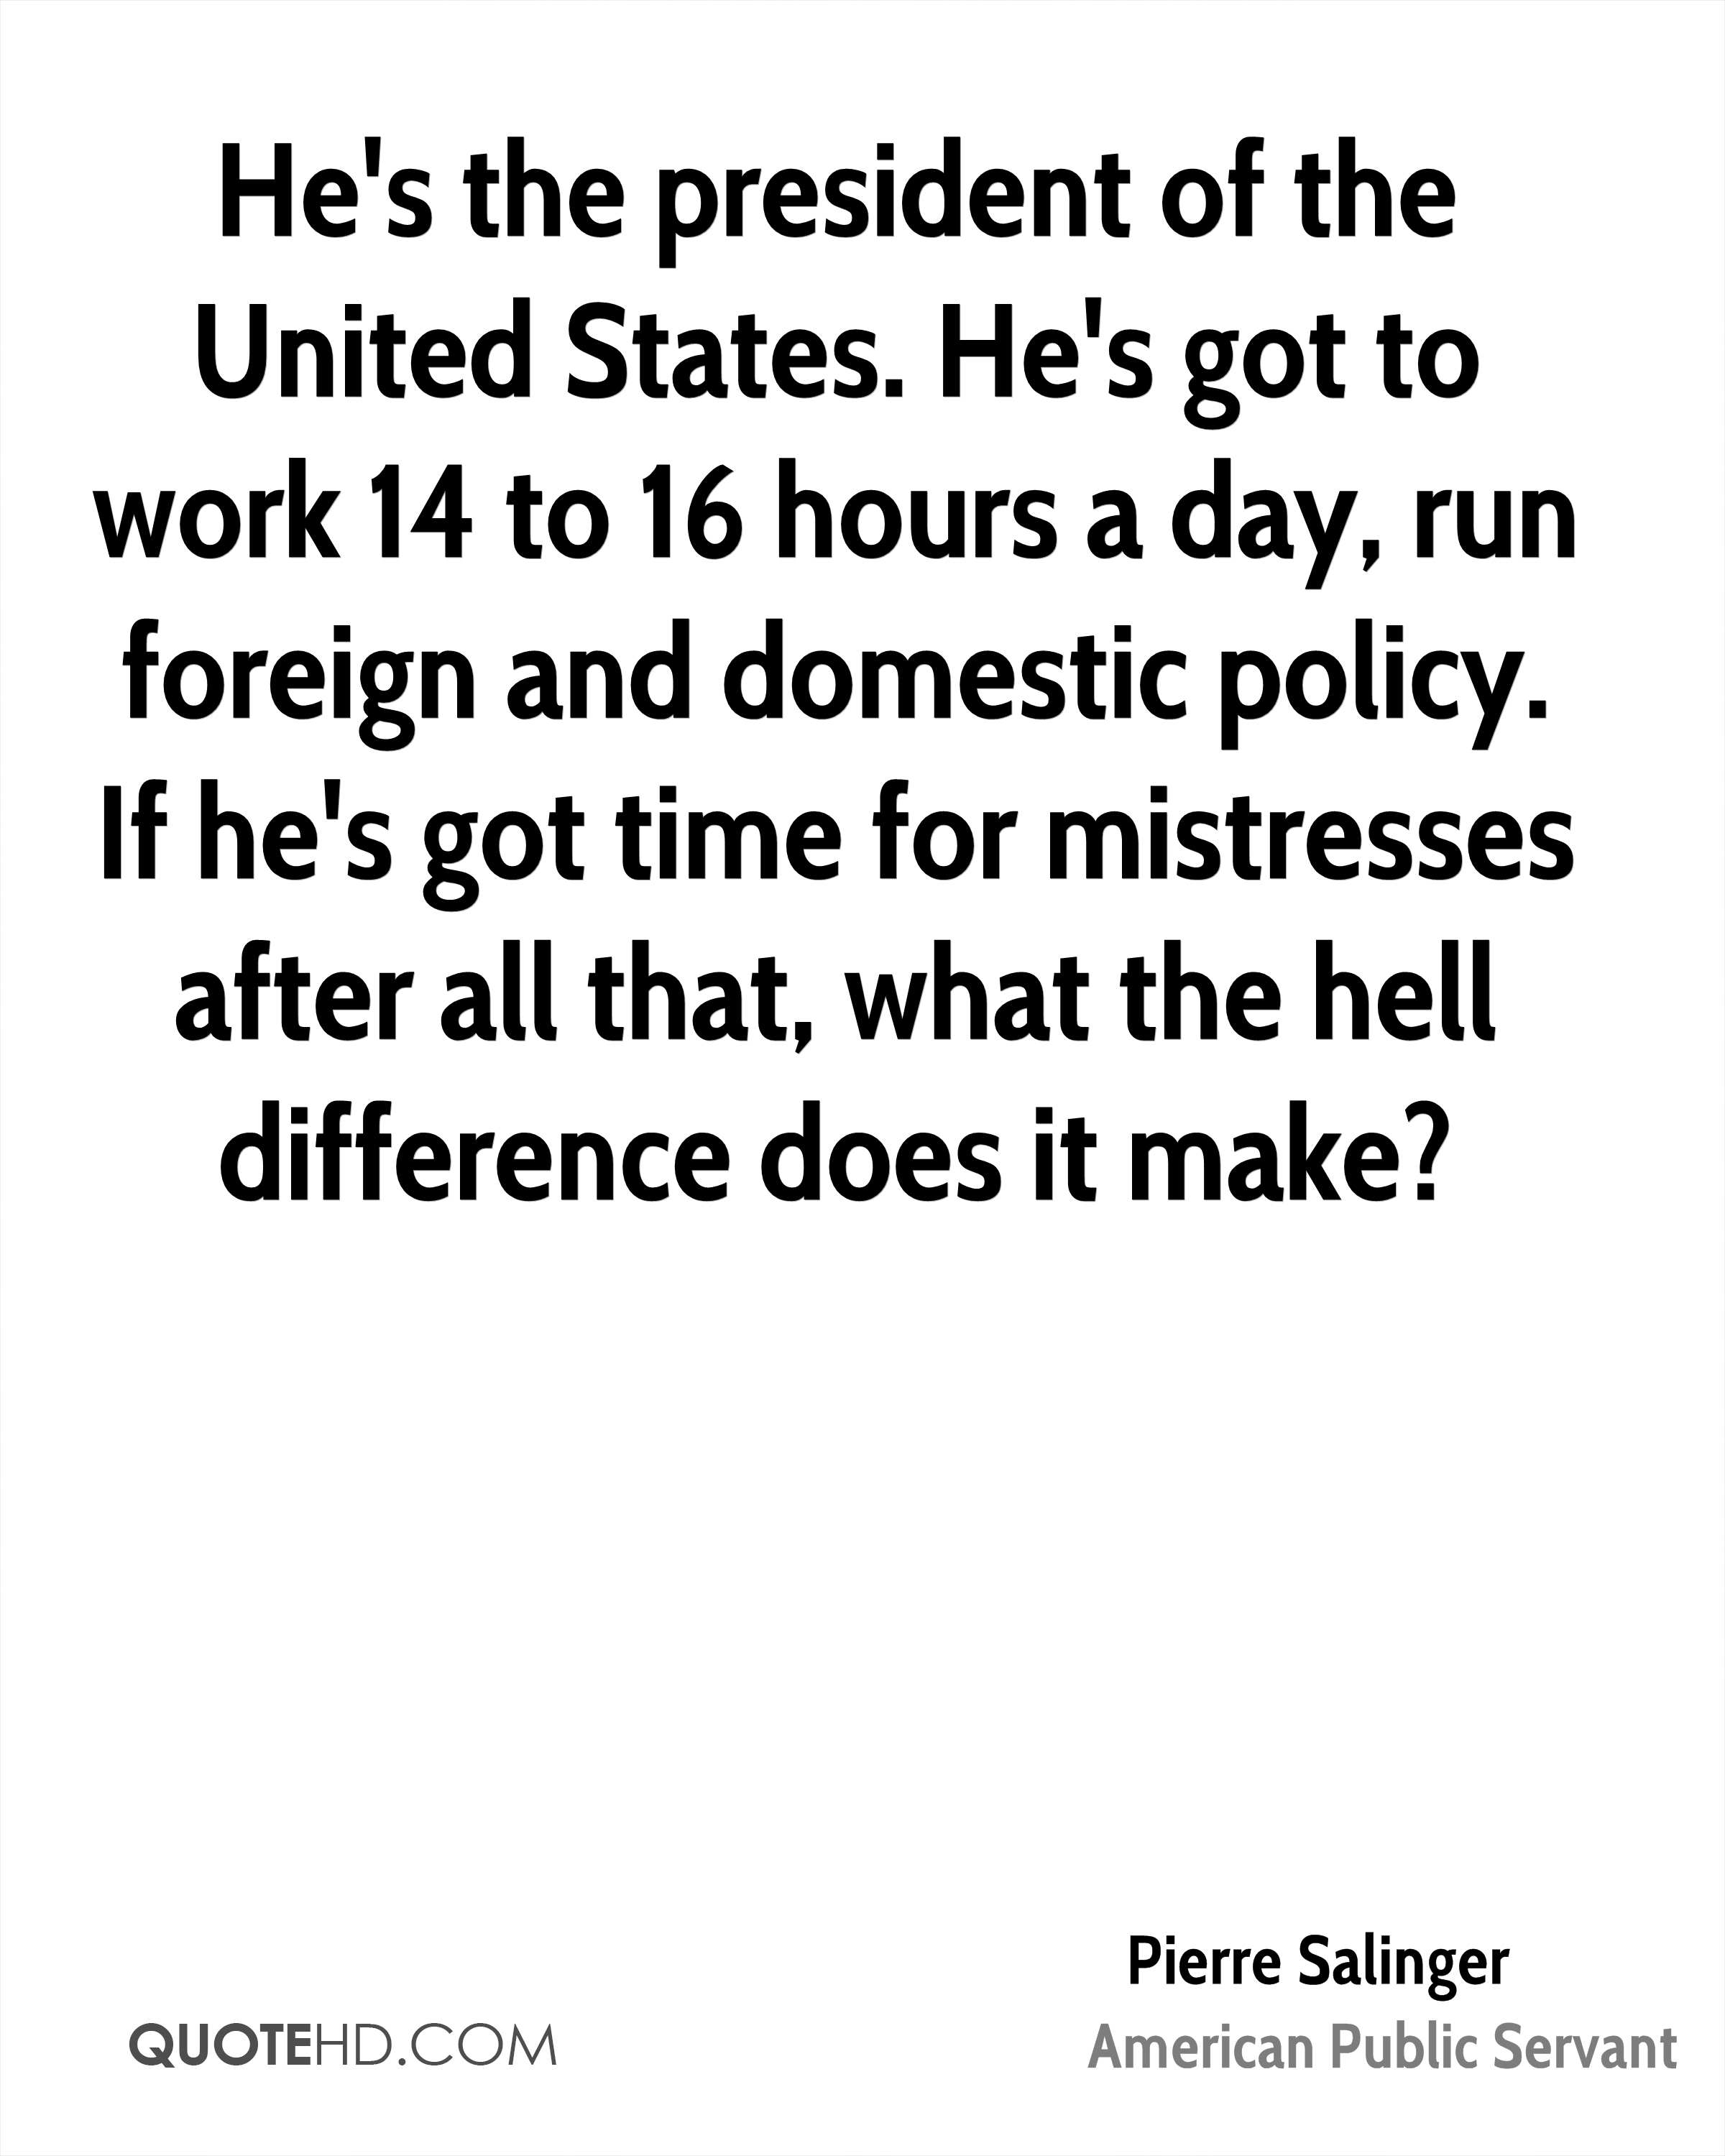 He's the president of the United States. He's got to work 14 to 16 hours a day, run foreign and domestic policy. If he's got time for mistresses after all that, what the hell difference does it make?